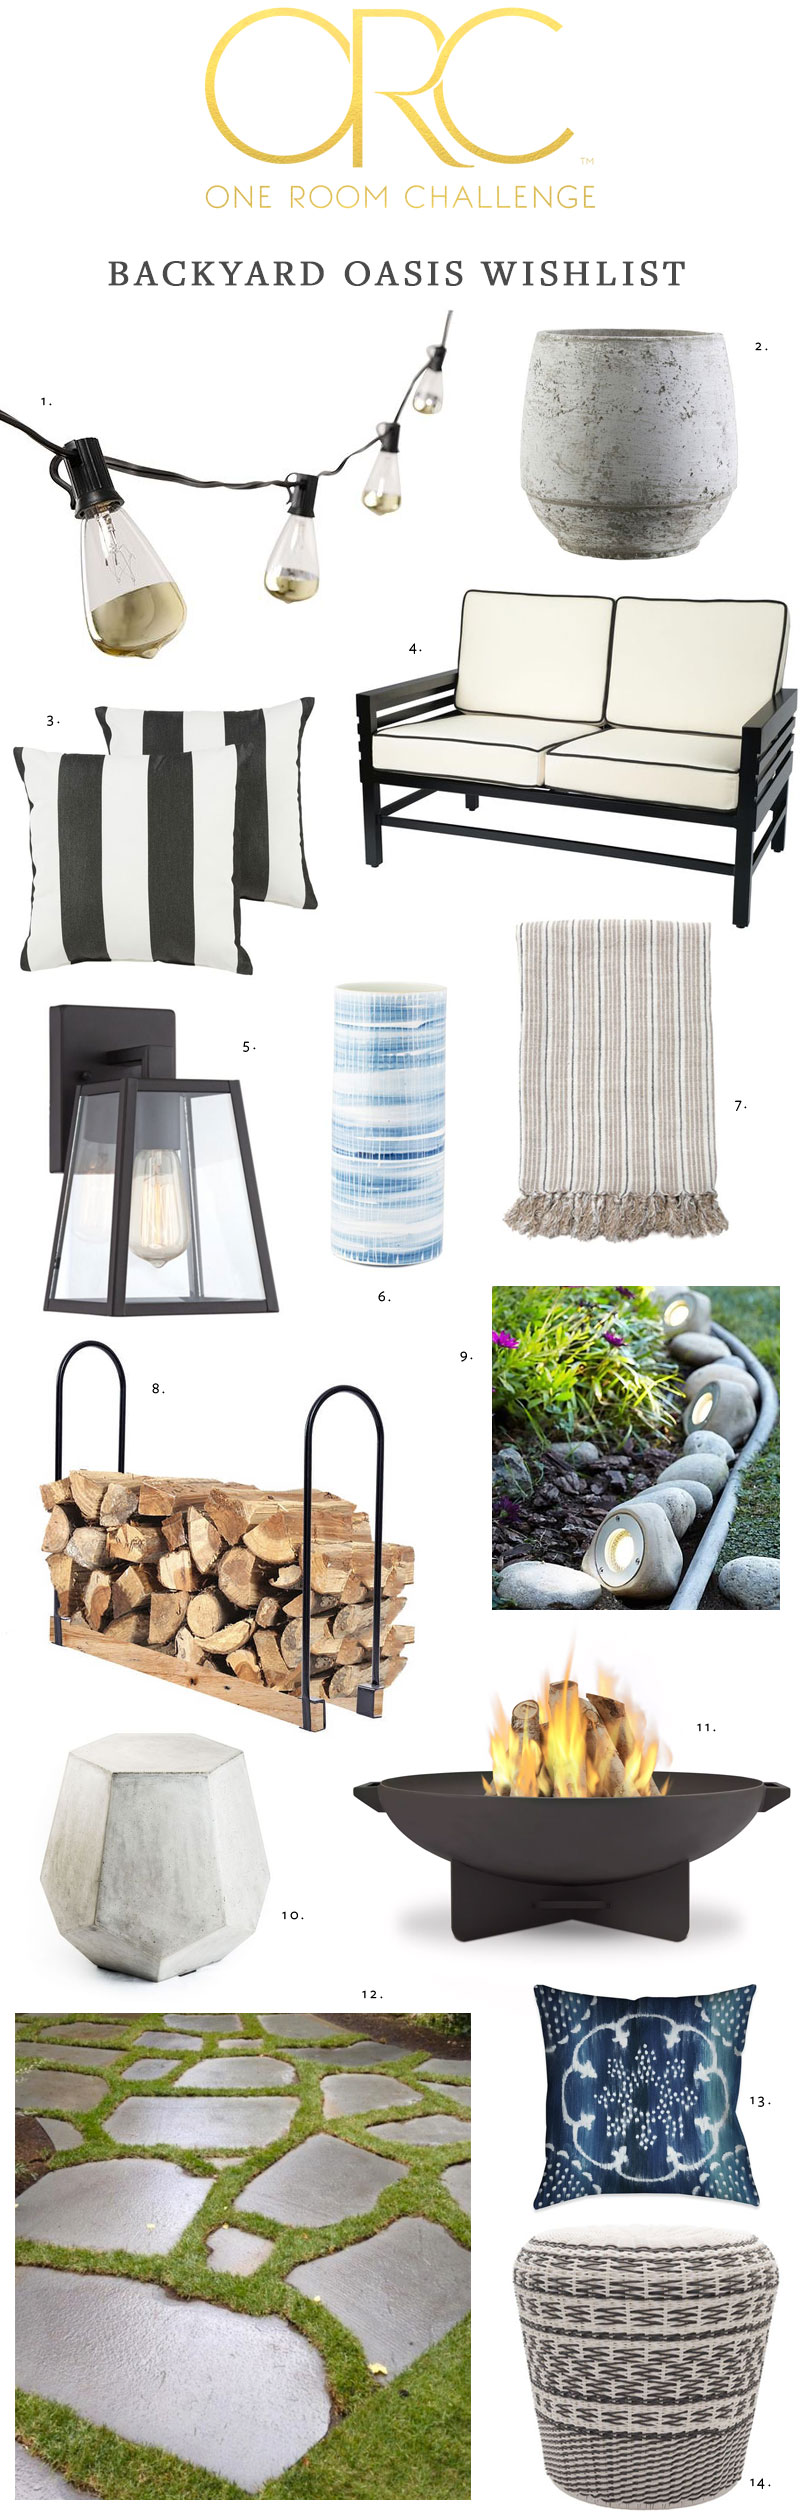 One Room Challenge, my backyard oasis makeover week 1. before photos, moodboard and design inspiration. @mycraftyhmelife #oneroomchallenge